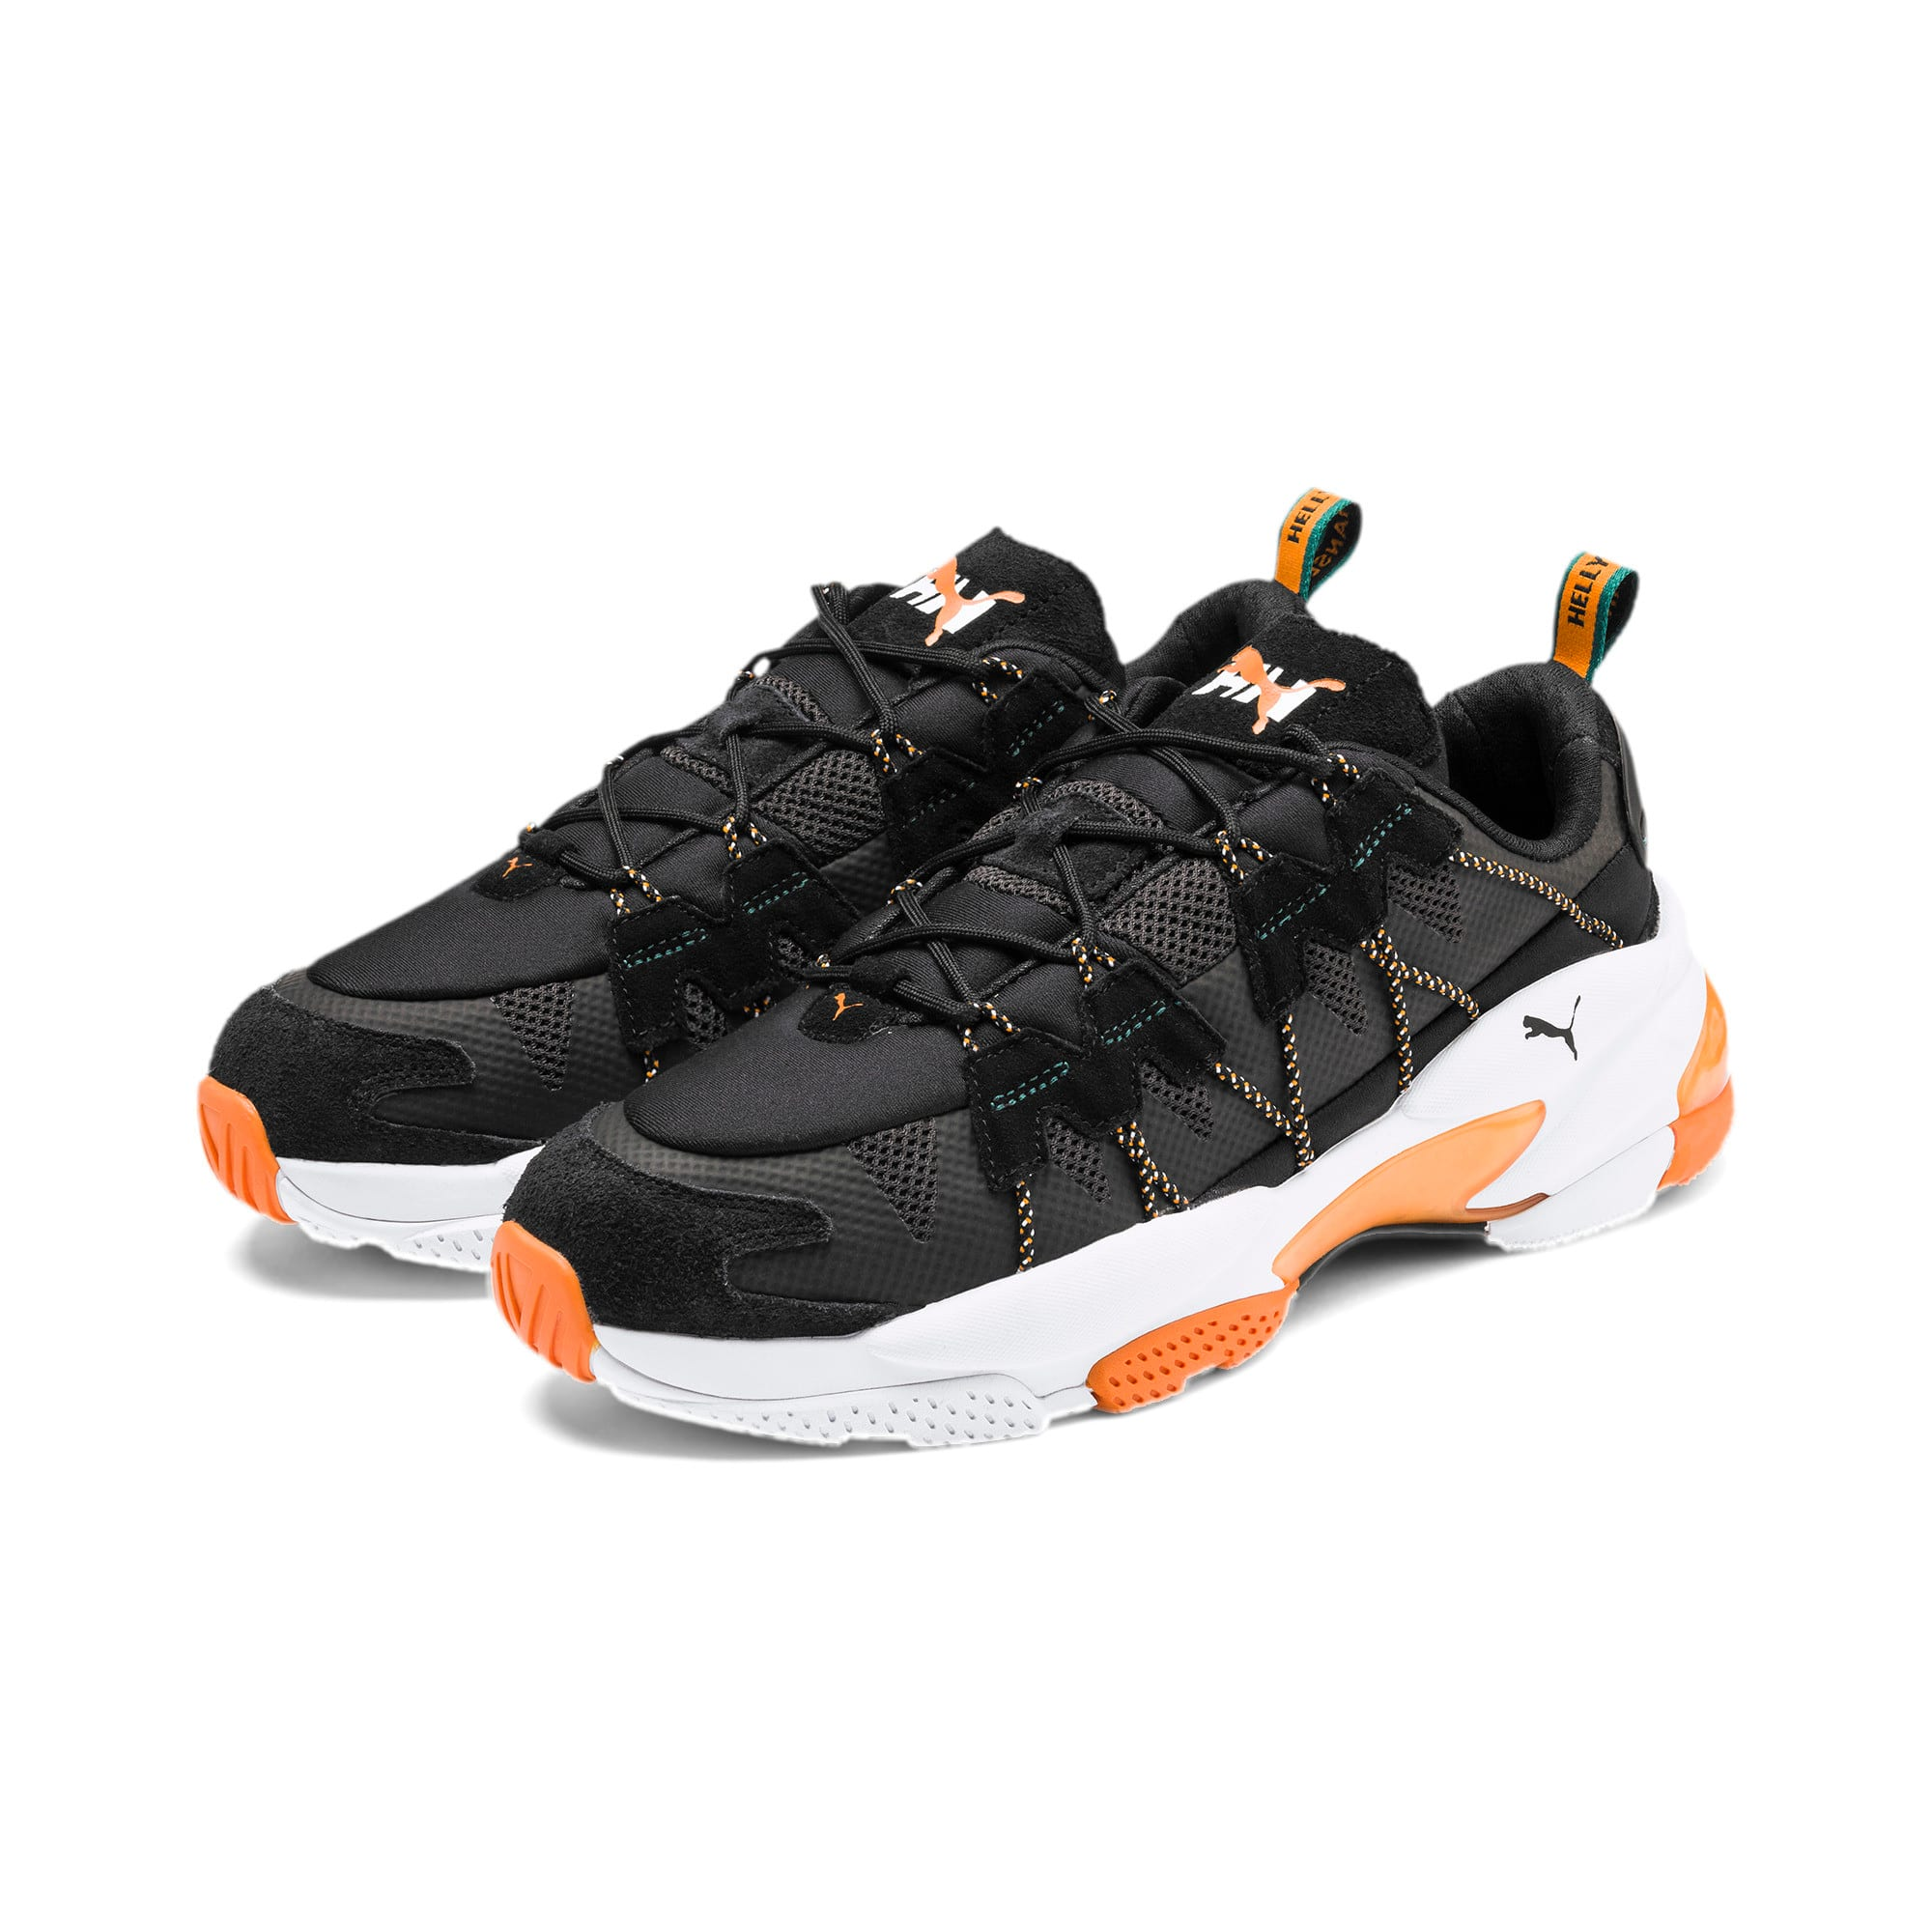 Thumbnail 2 of PUMA x HELLY HANSEN Omega Trainers, Puma Black, medium